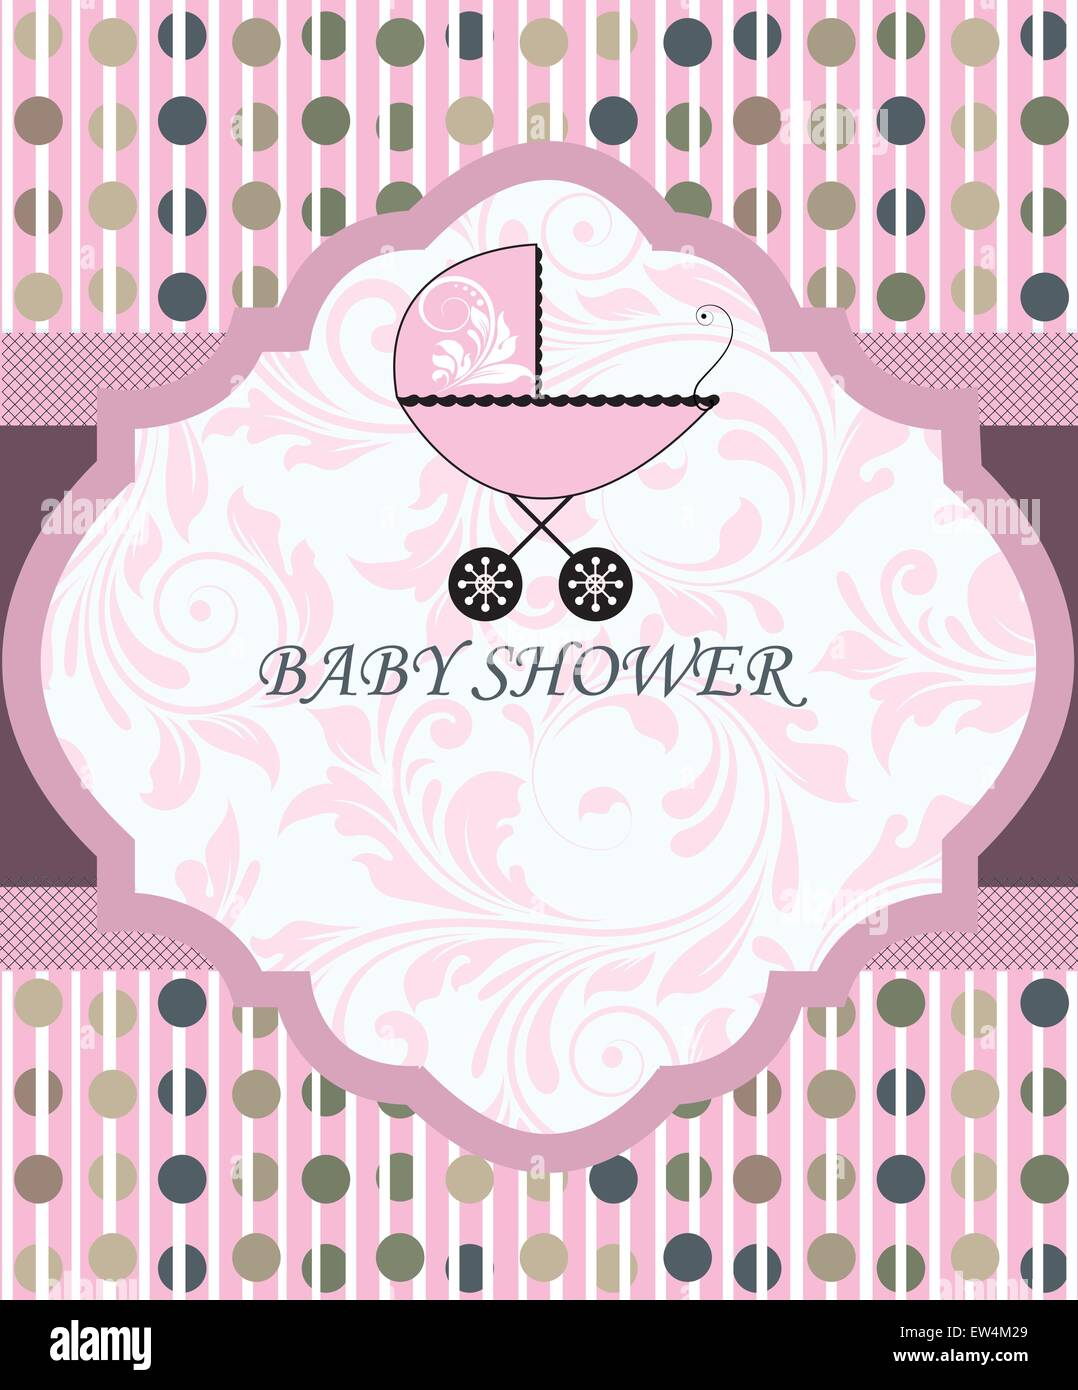 Vintage baby shower invitation card with ornate elegant retro stock vintage baby shower invitation card with ornate elegant retro abstract floral design pink with baby carriage and polka dots vector illustration filmwisefo